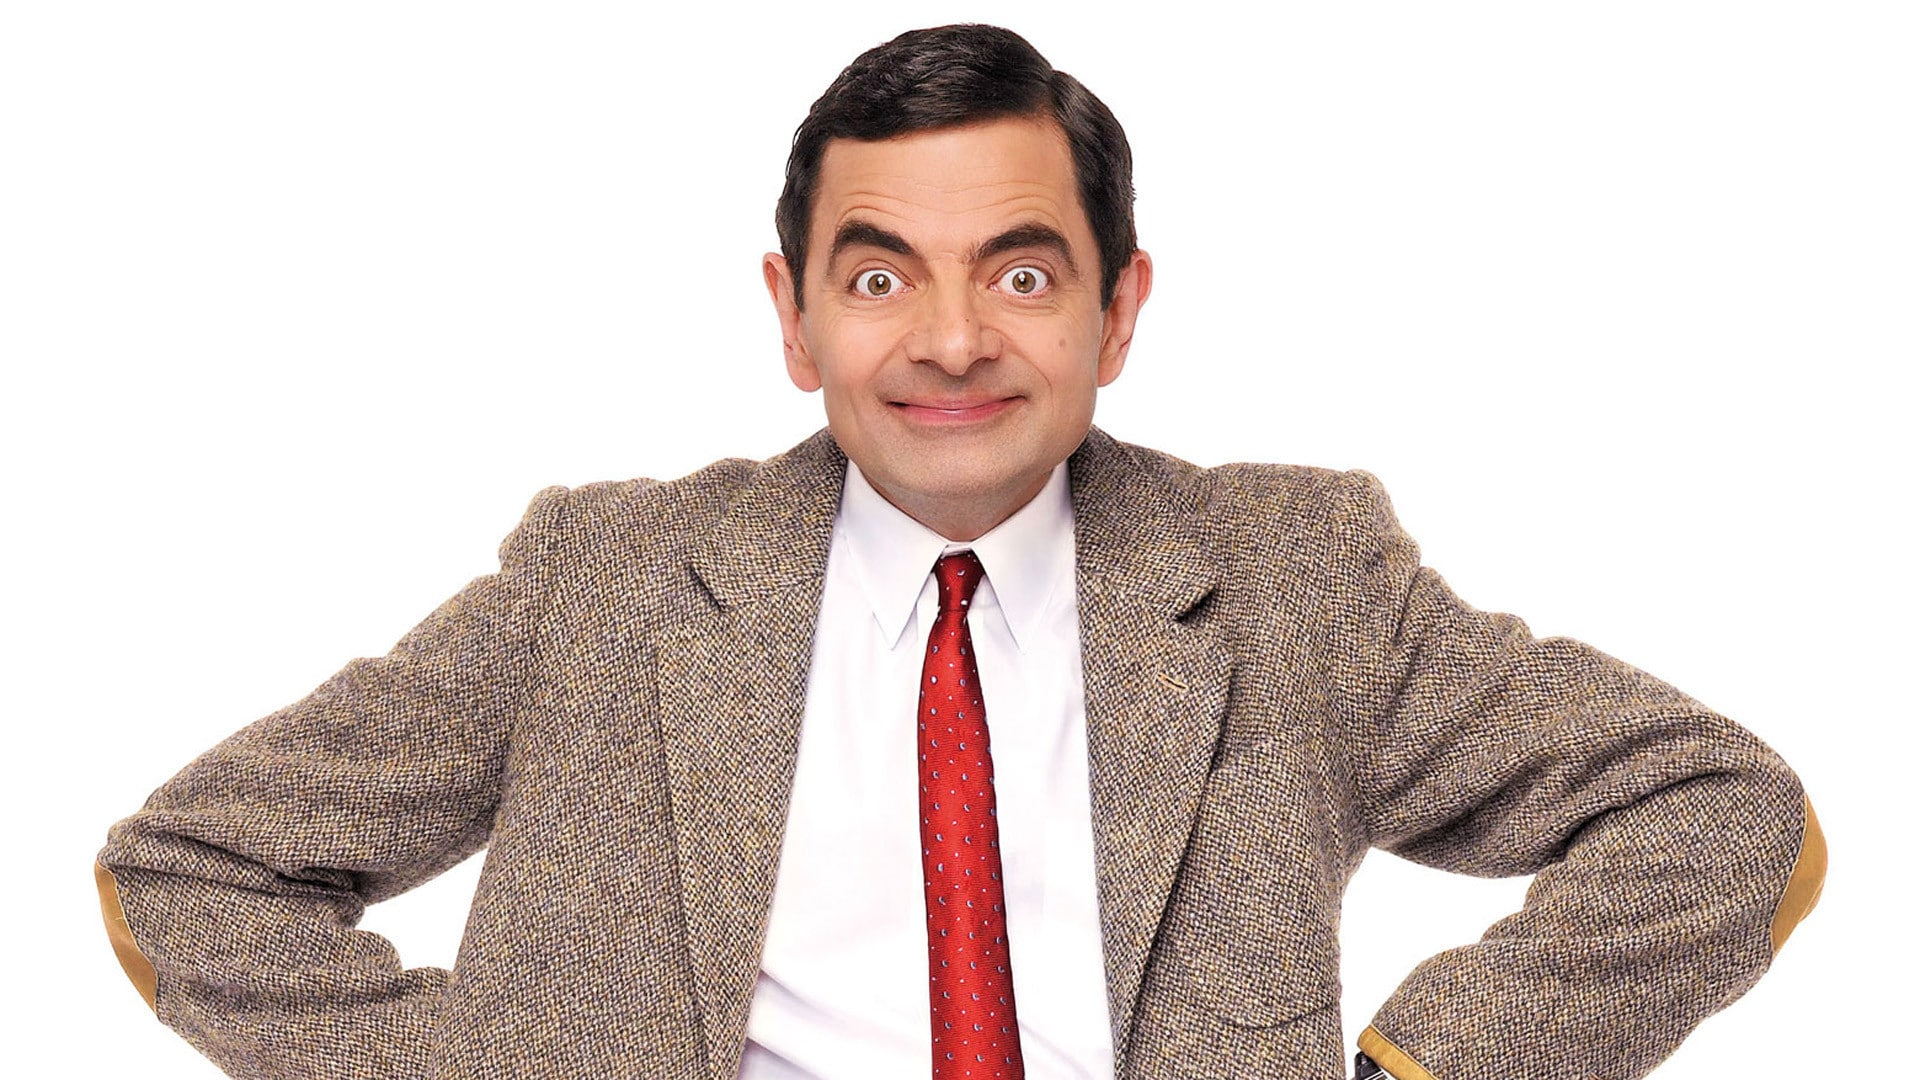 Rowan Atkinson Backgrounds